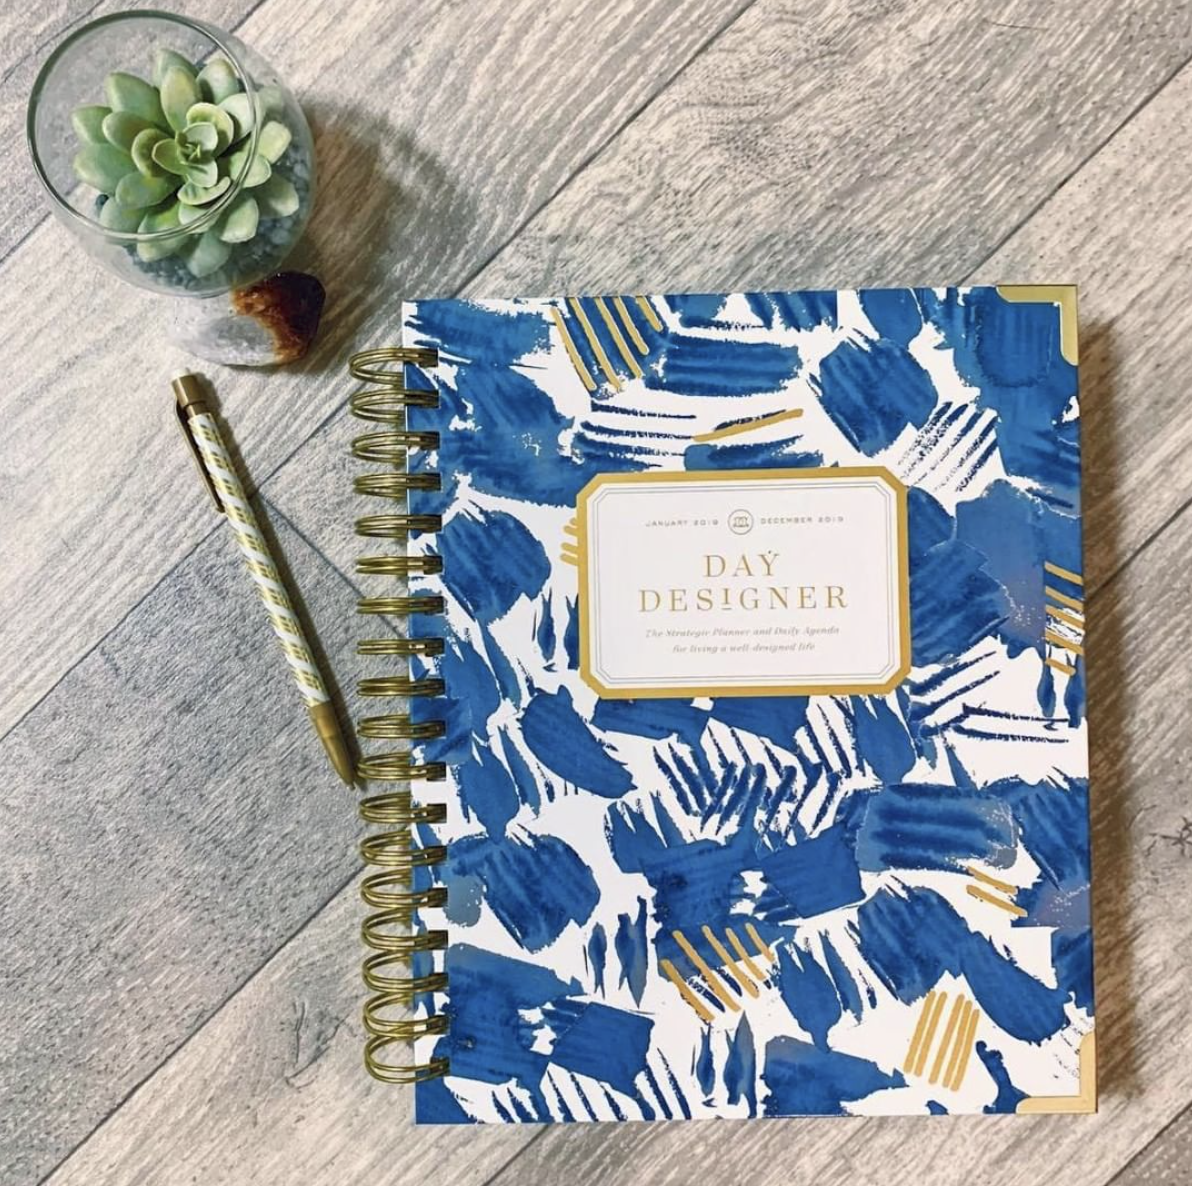 The Day Designer - This planner is for anyone interested in intentional living. The planner provides space to dream up goals, and it helps to facilitate accomplishing those goals.